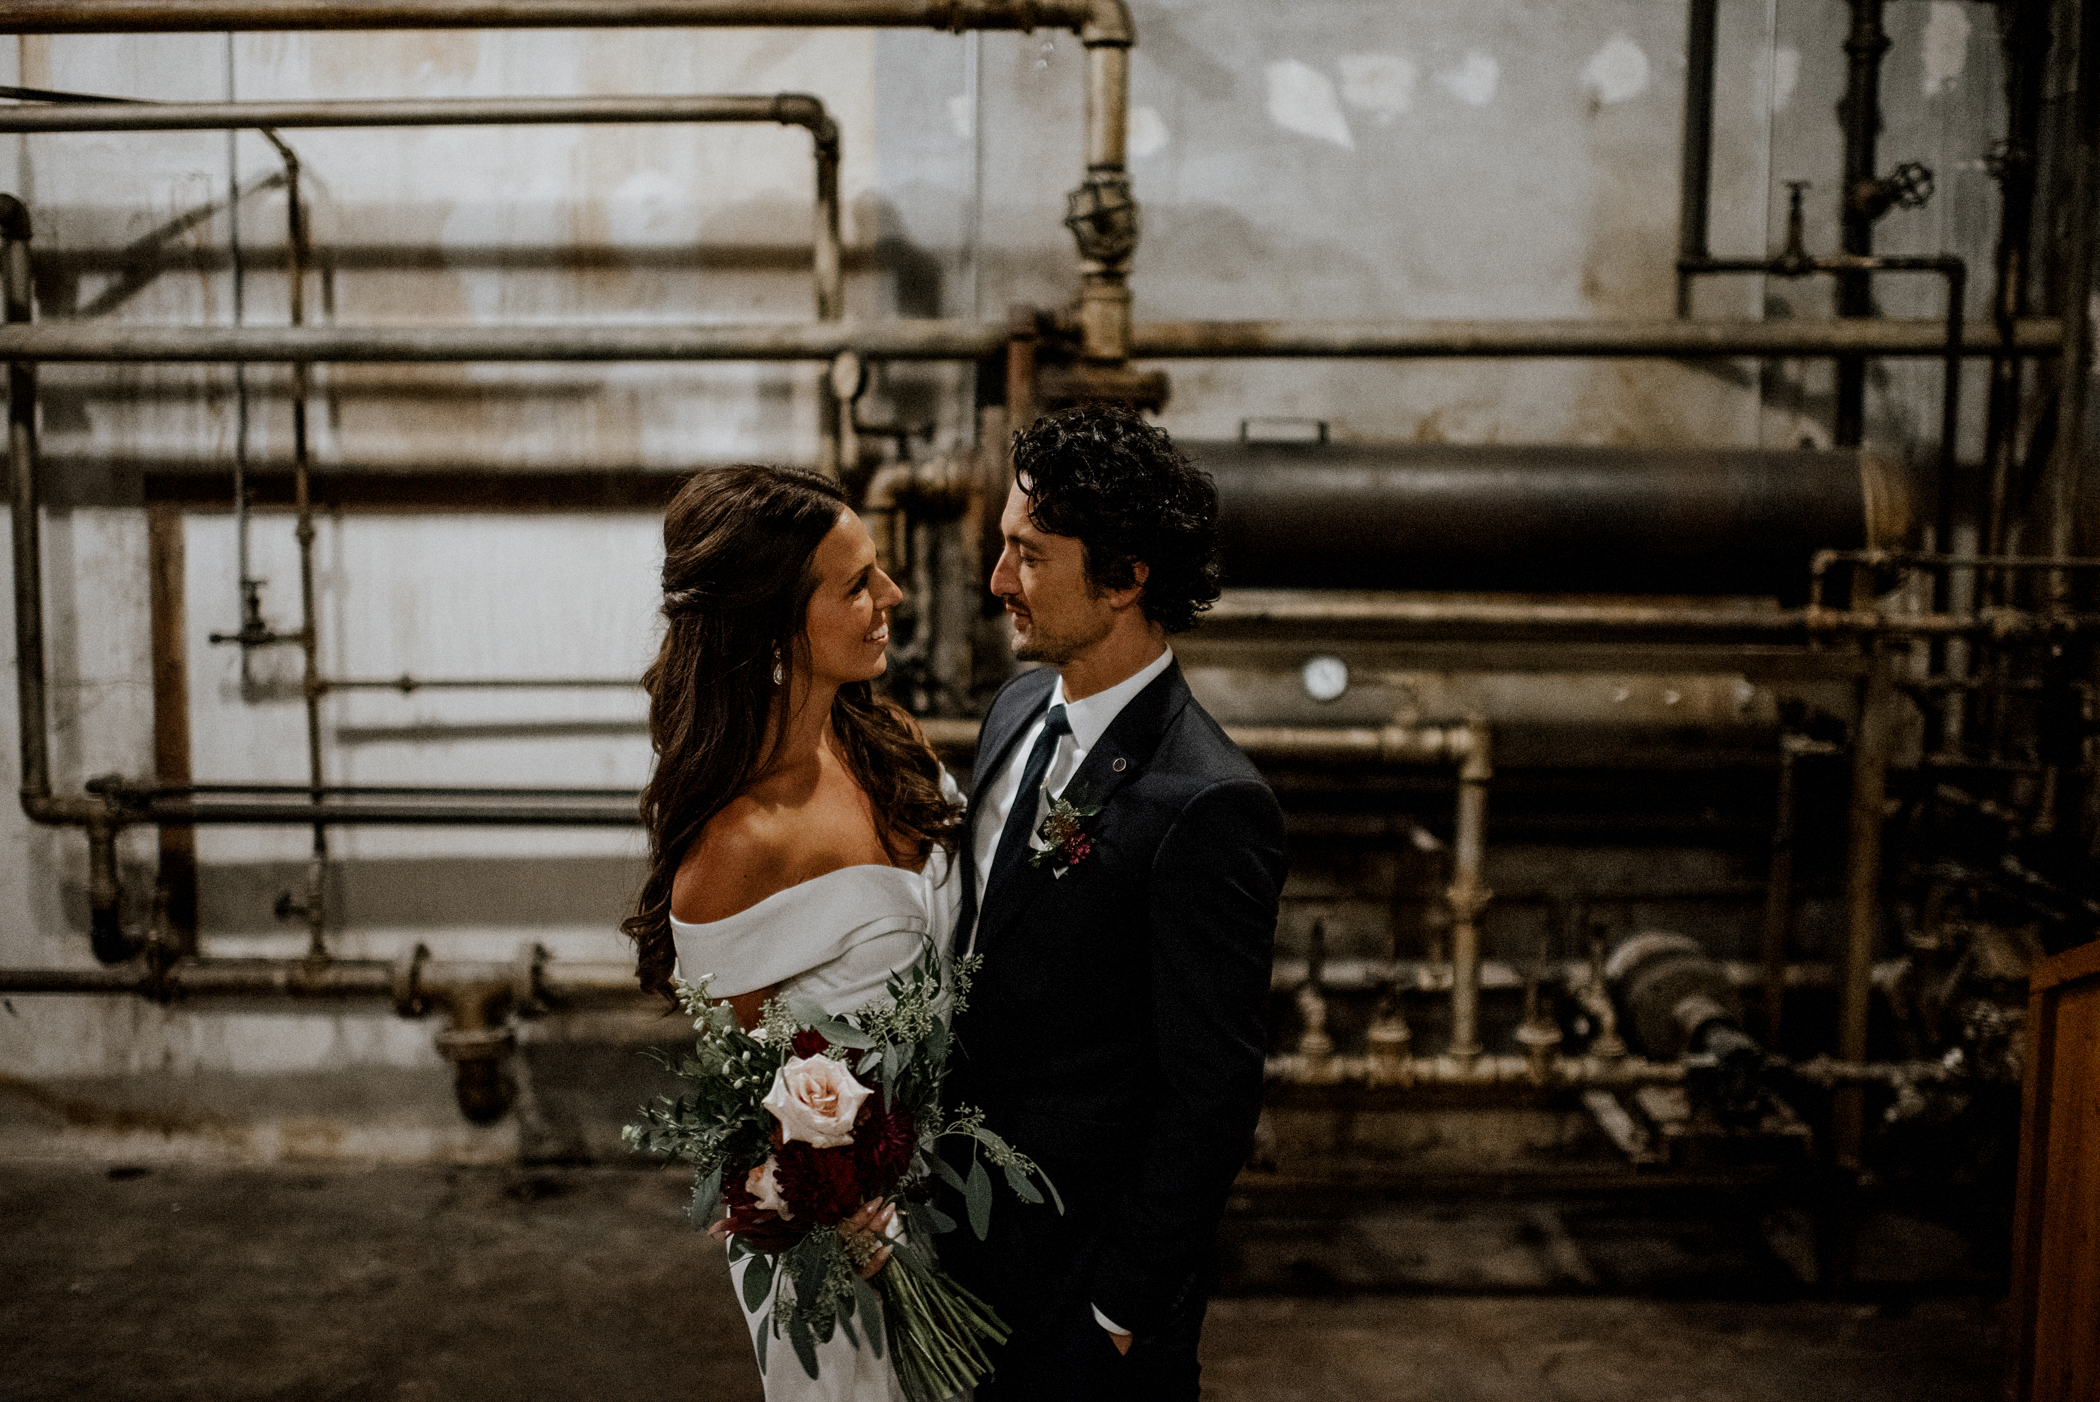 044-kaoverii-silva-MT-ubc-boathouse-industrial-wedding-photography-blog.png